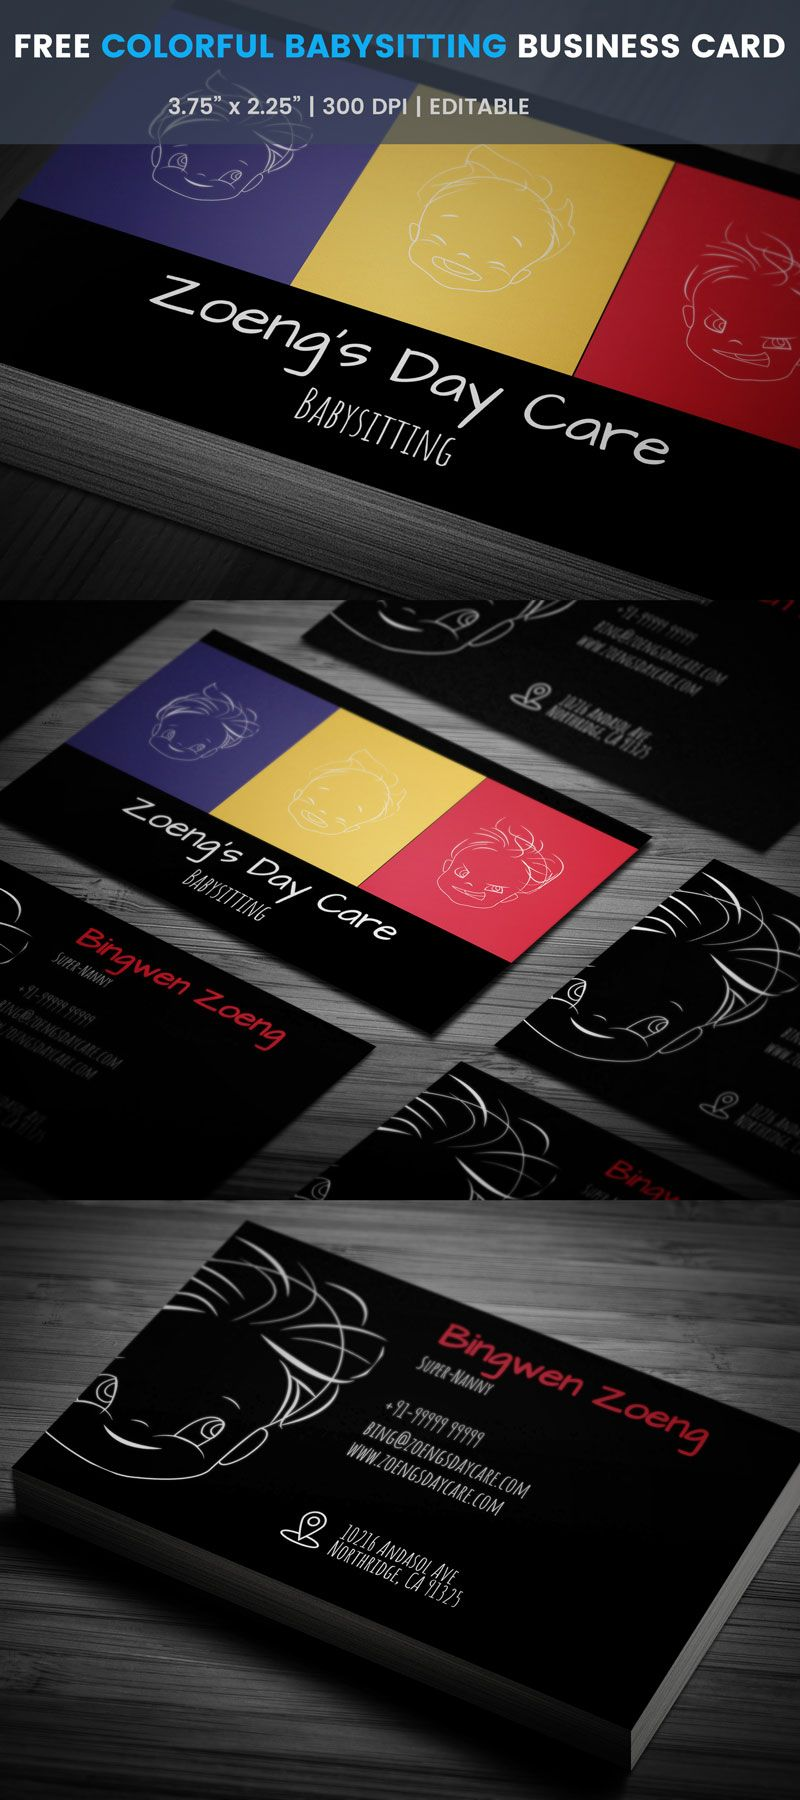 Free free colorful babysitting business card business cards colorful babysitting business card full preview colourmoves